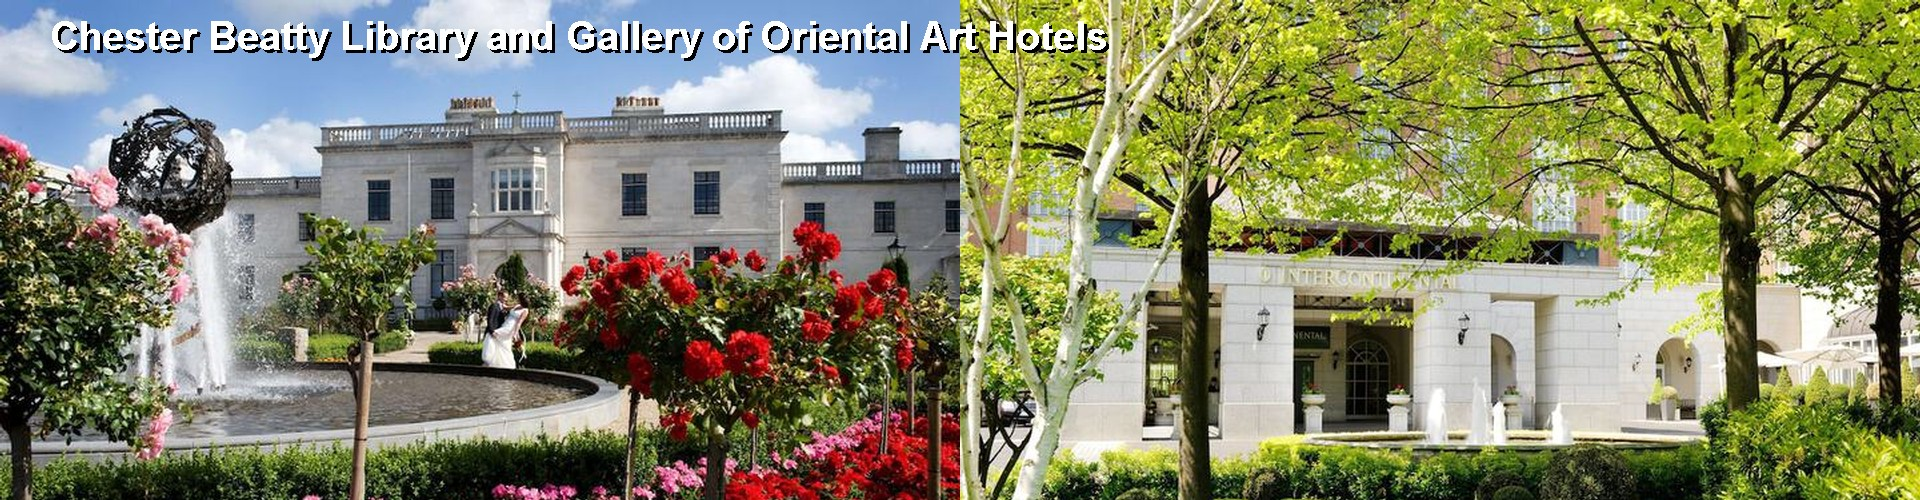 5 Best Hotels near Chester Beatty Library and Gallery of Oriental Art